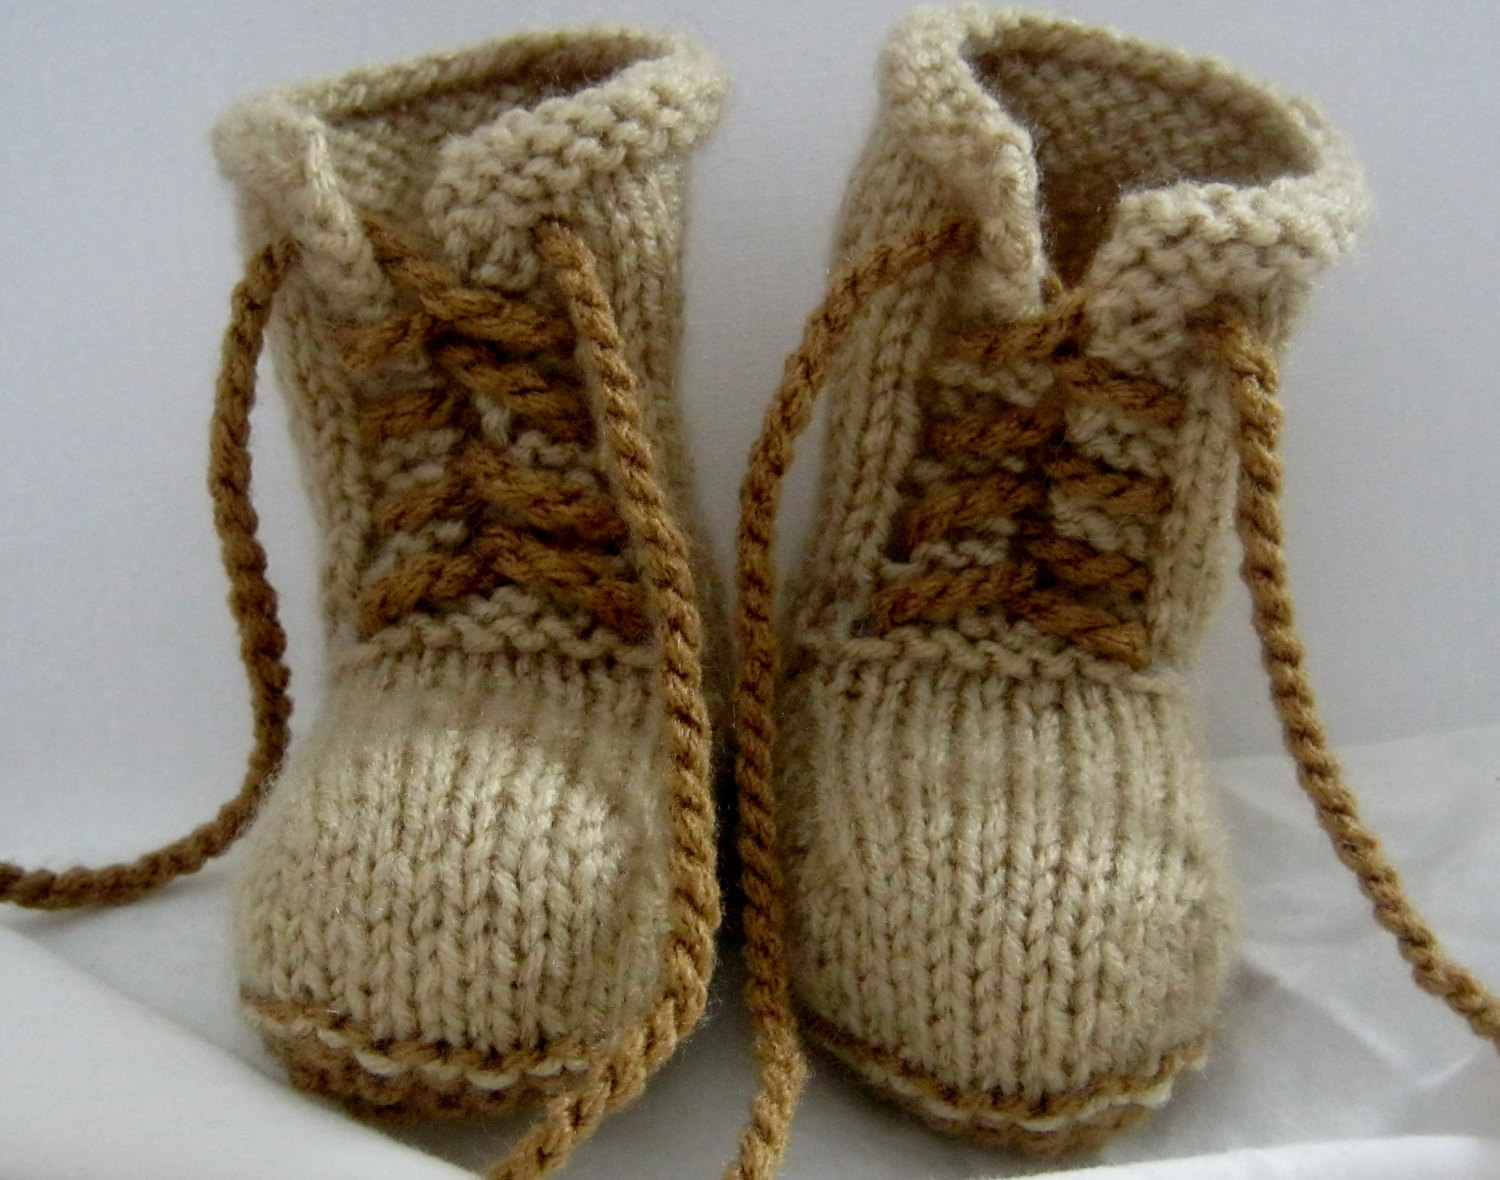 Colorful Knit Boot Pattern Ensign - Blanket Knitting Pattern Ideas ...